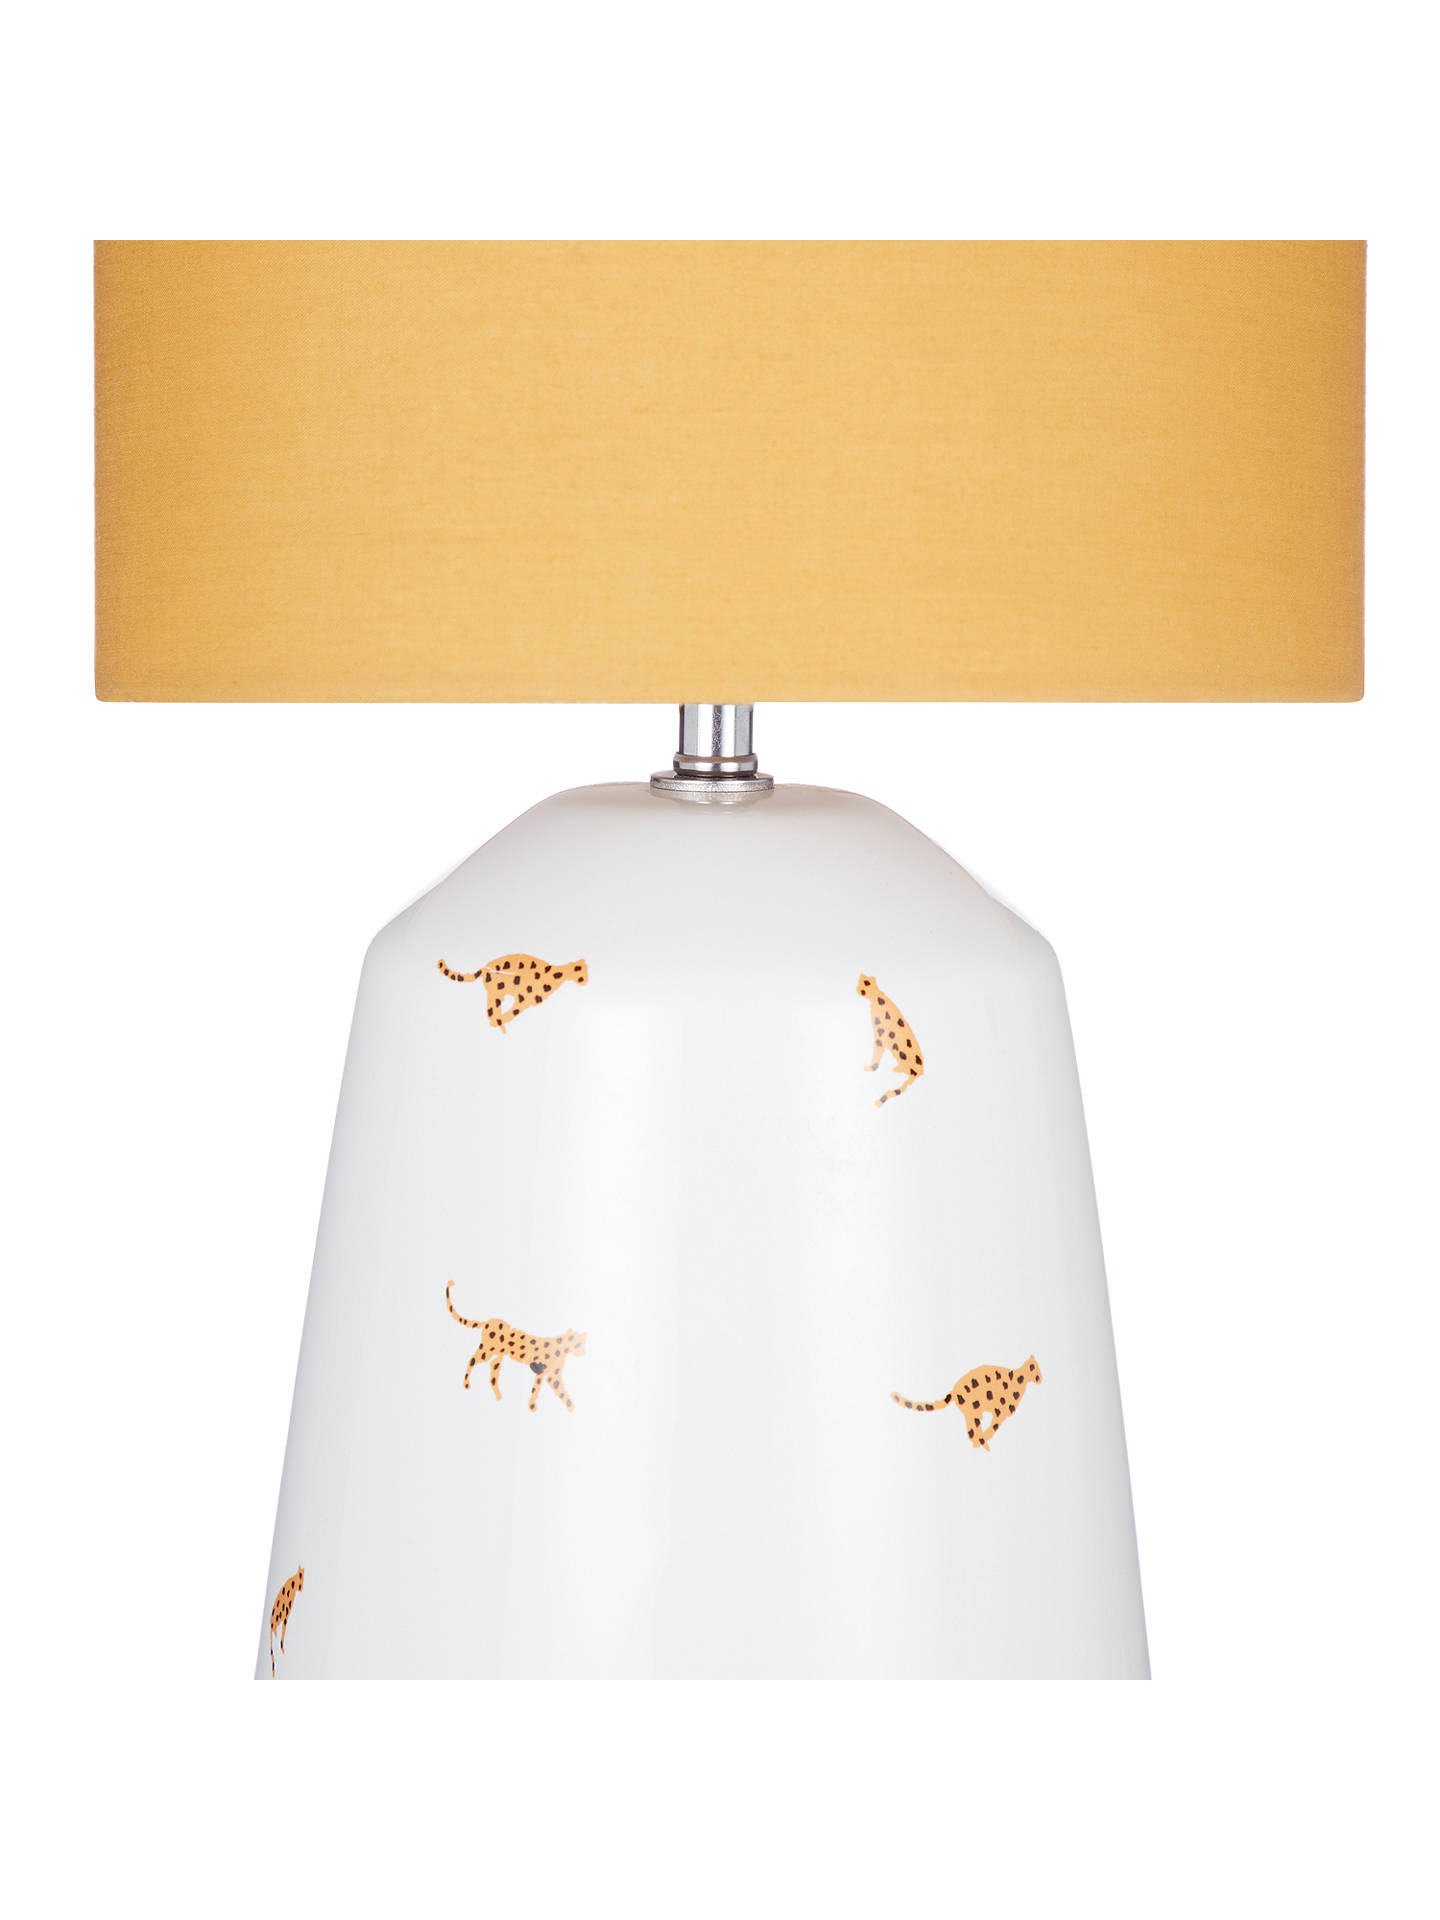 BuyHouse by John Lewis Cheetah Table Lamp, Mustard Online at johnlewis.com